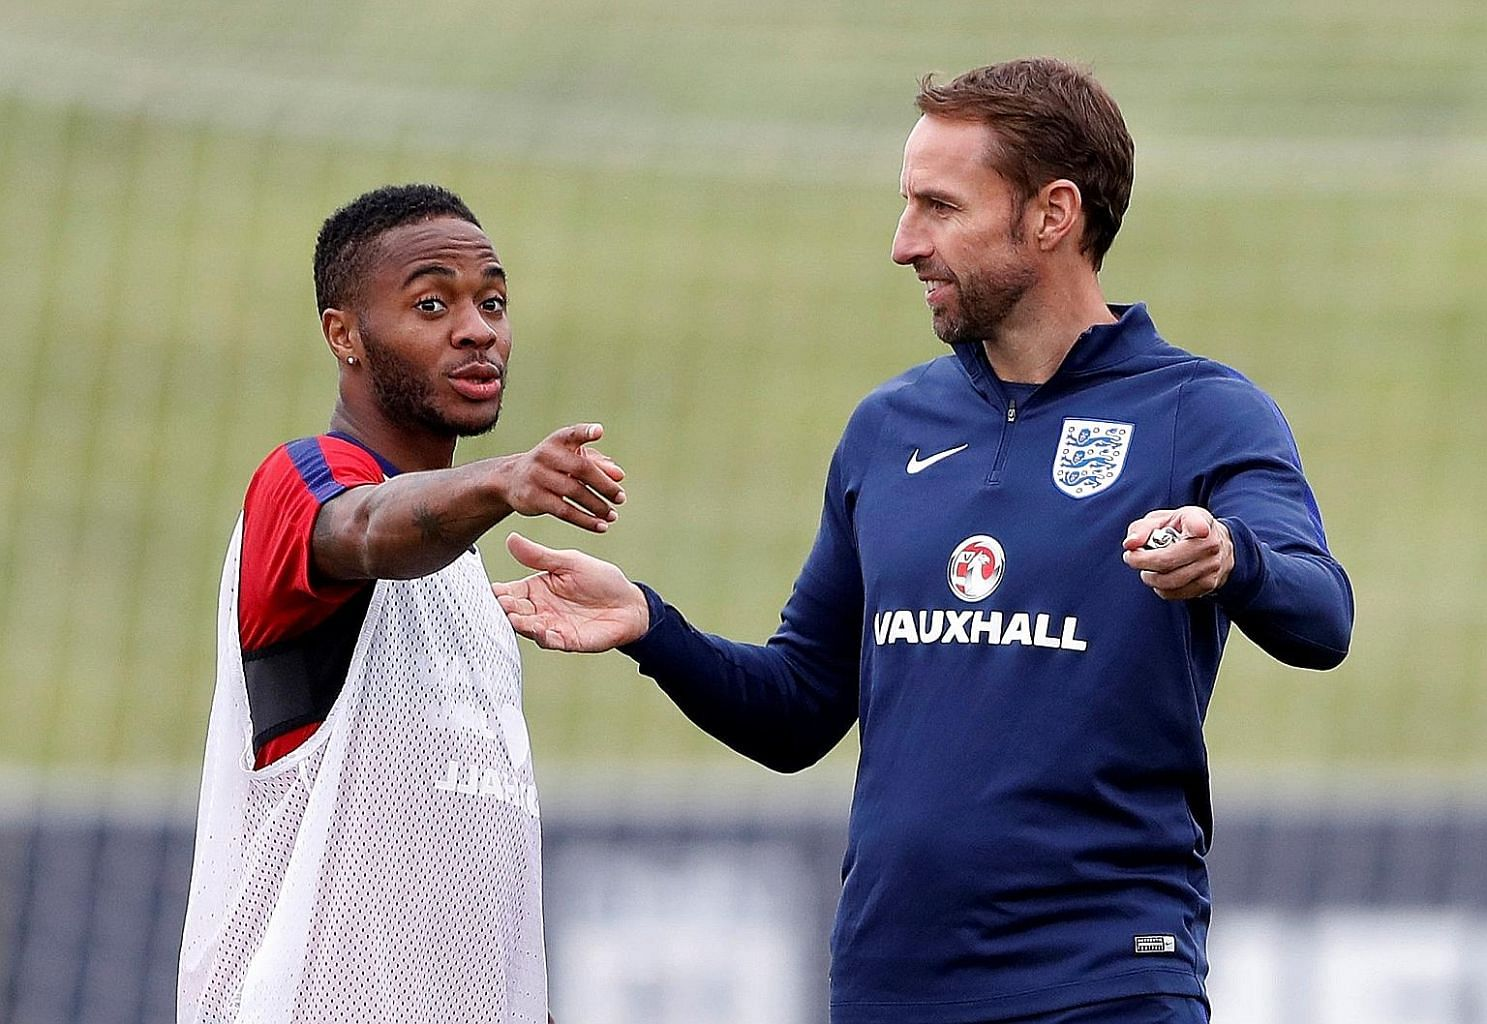 Gareth Southgate has failed to get the best out of Raheem Sterling, with the player's most recent international goal coming against Estonia in 2015. It is an issue the England manager must try to solve ahead of the World Cup Finals in Russia in June.